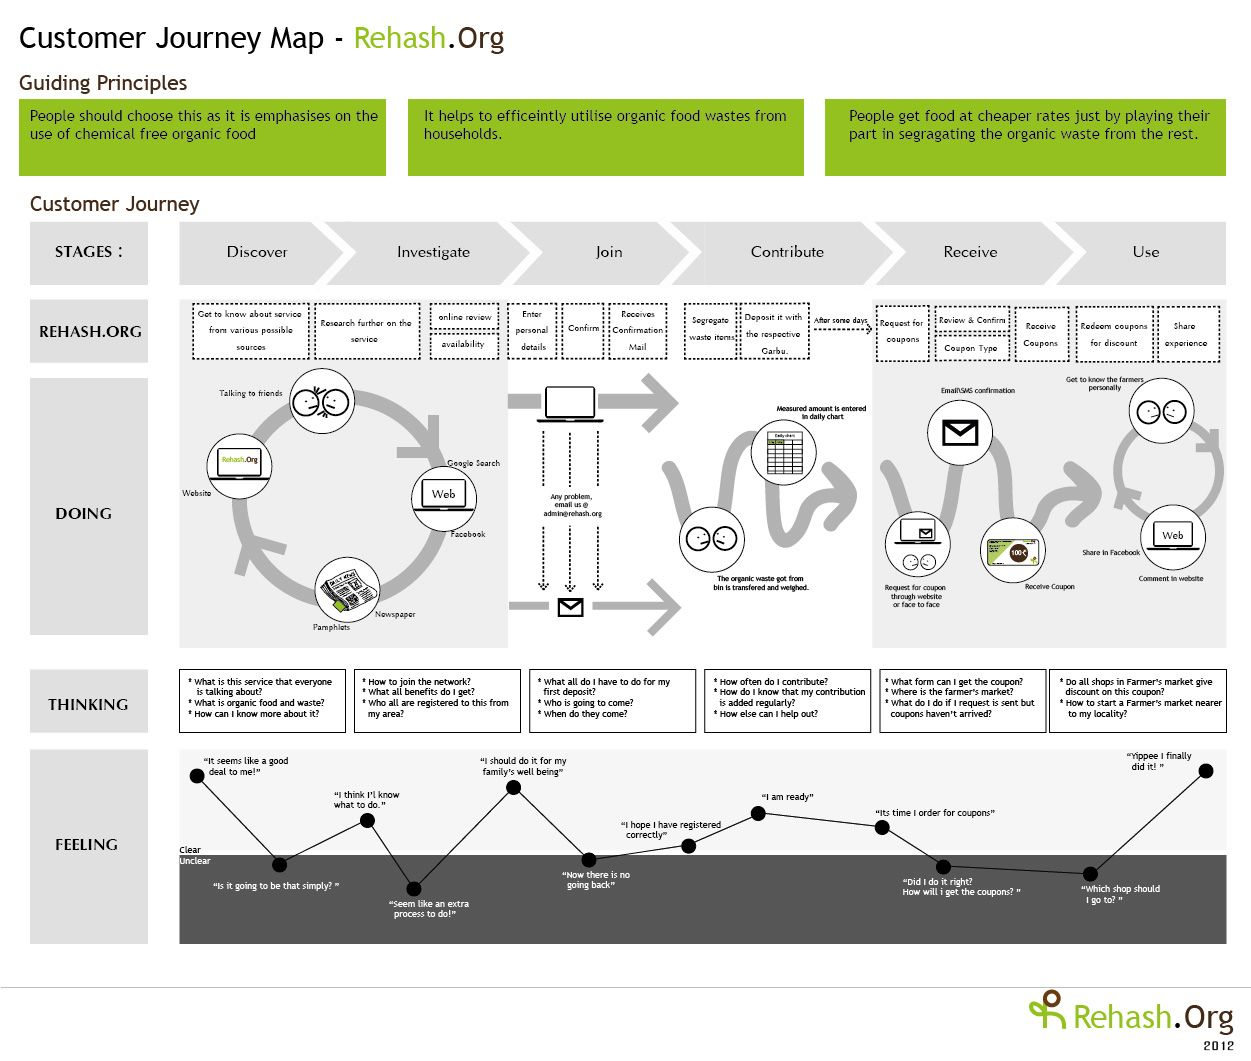 17 Best ideas about Customer Journey Mapping on Pinterest ...